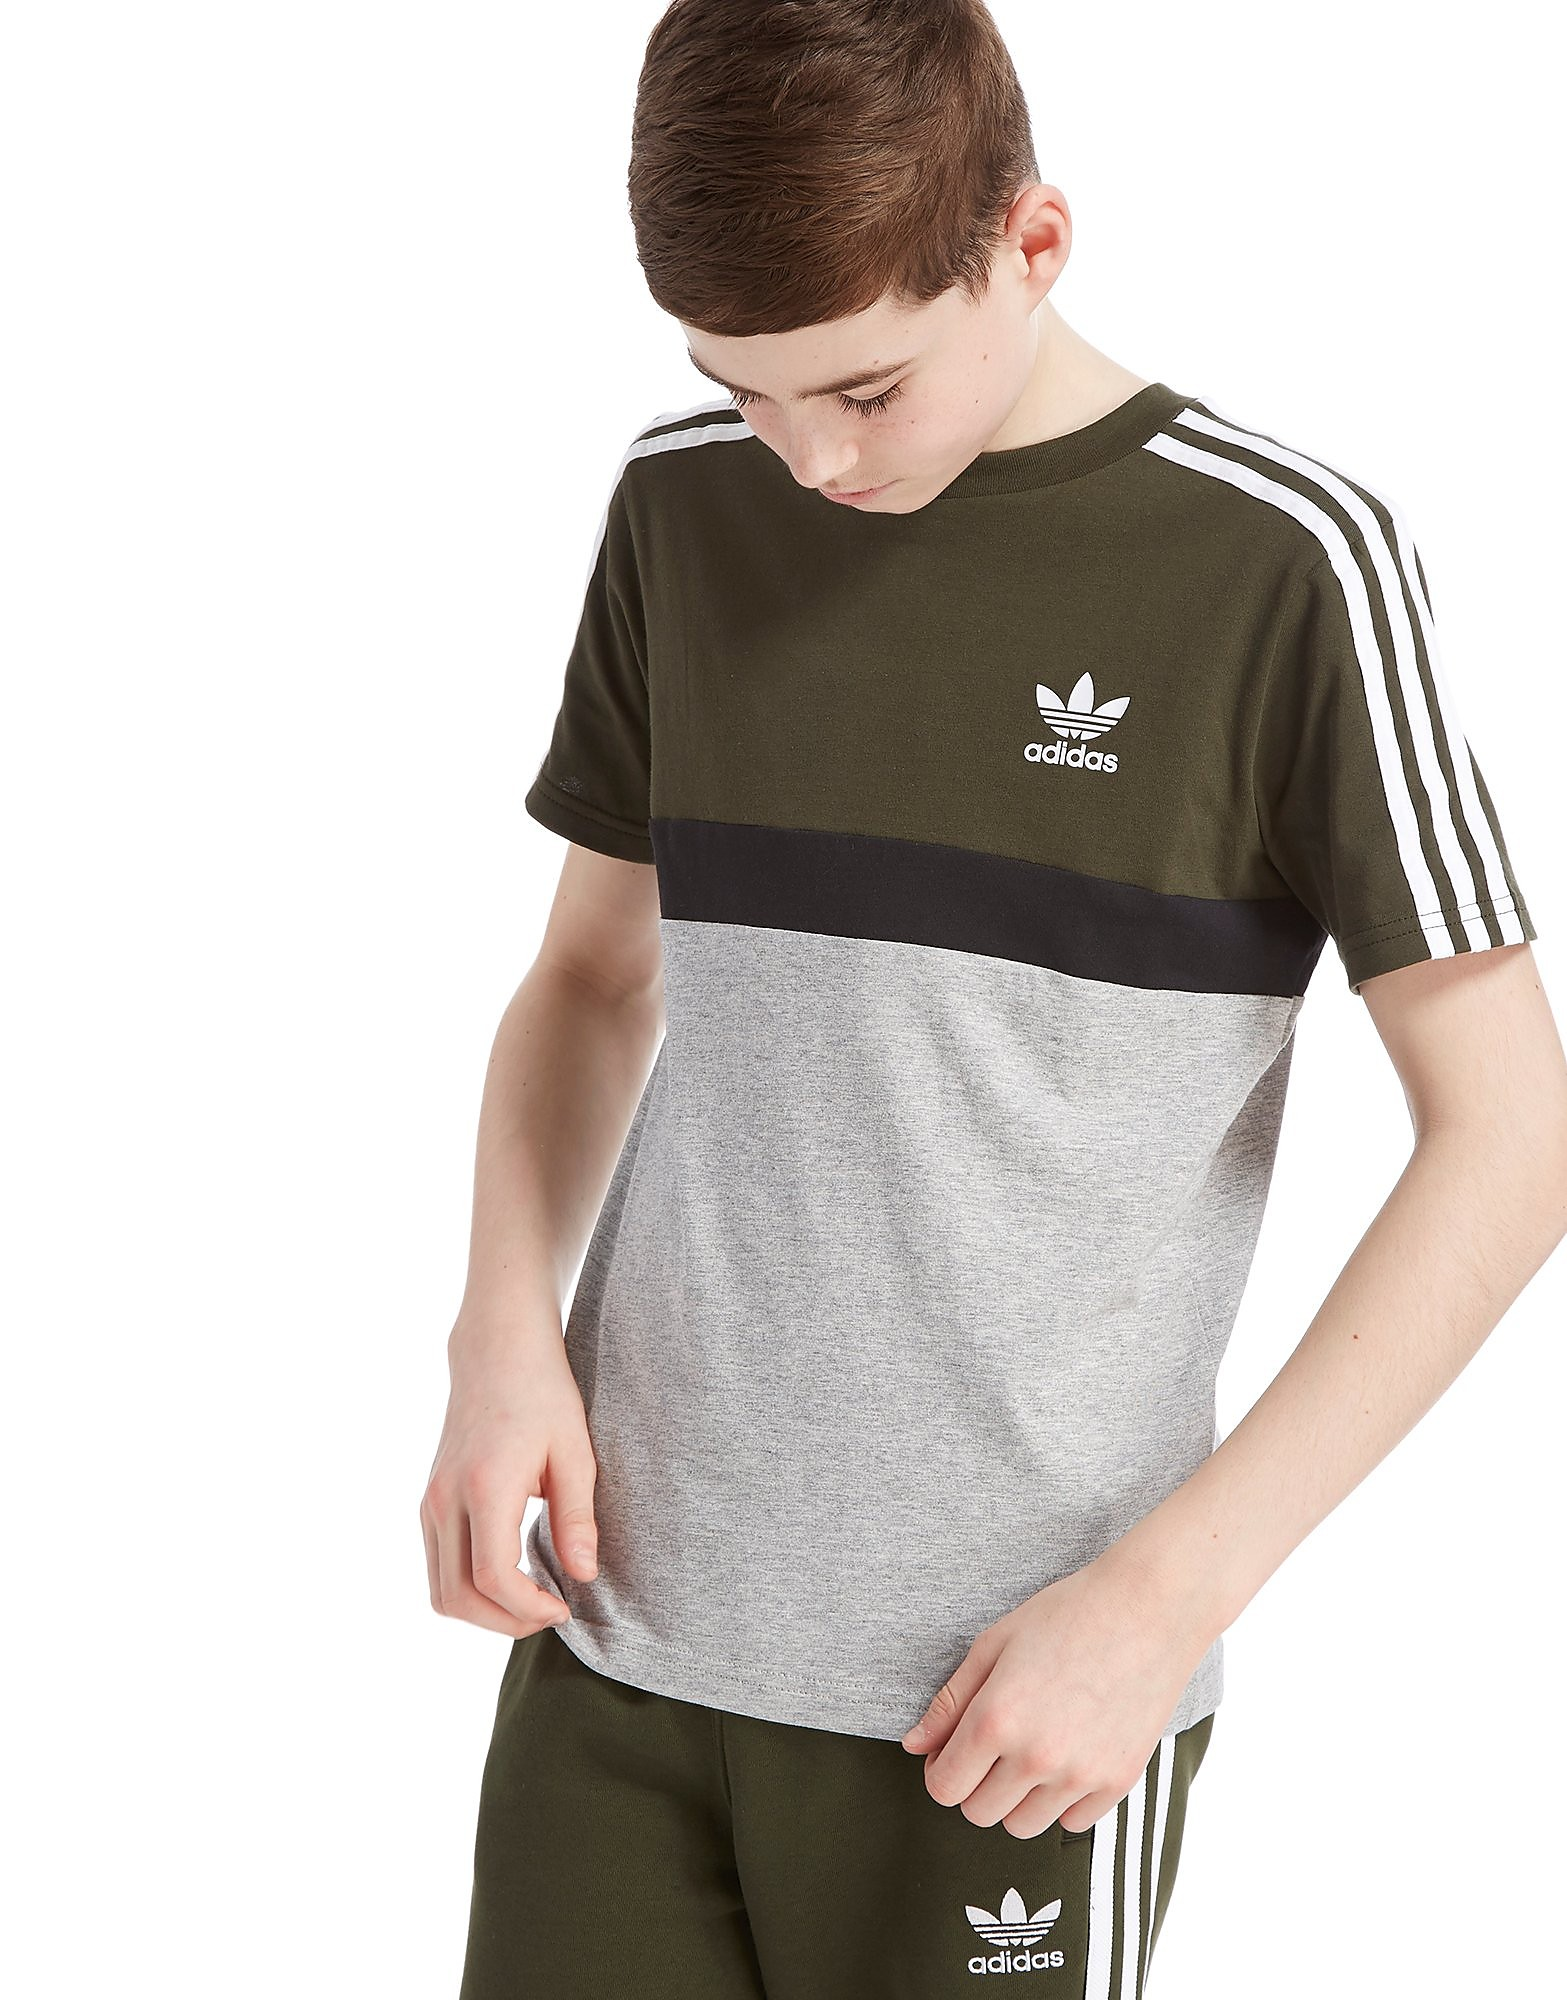 adidas Originals California Colourblock T-Shirt Junior